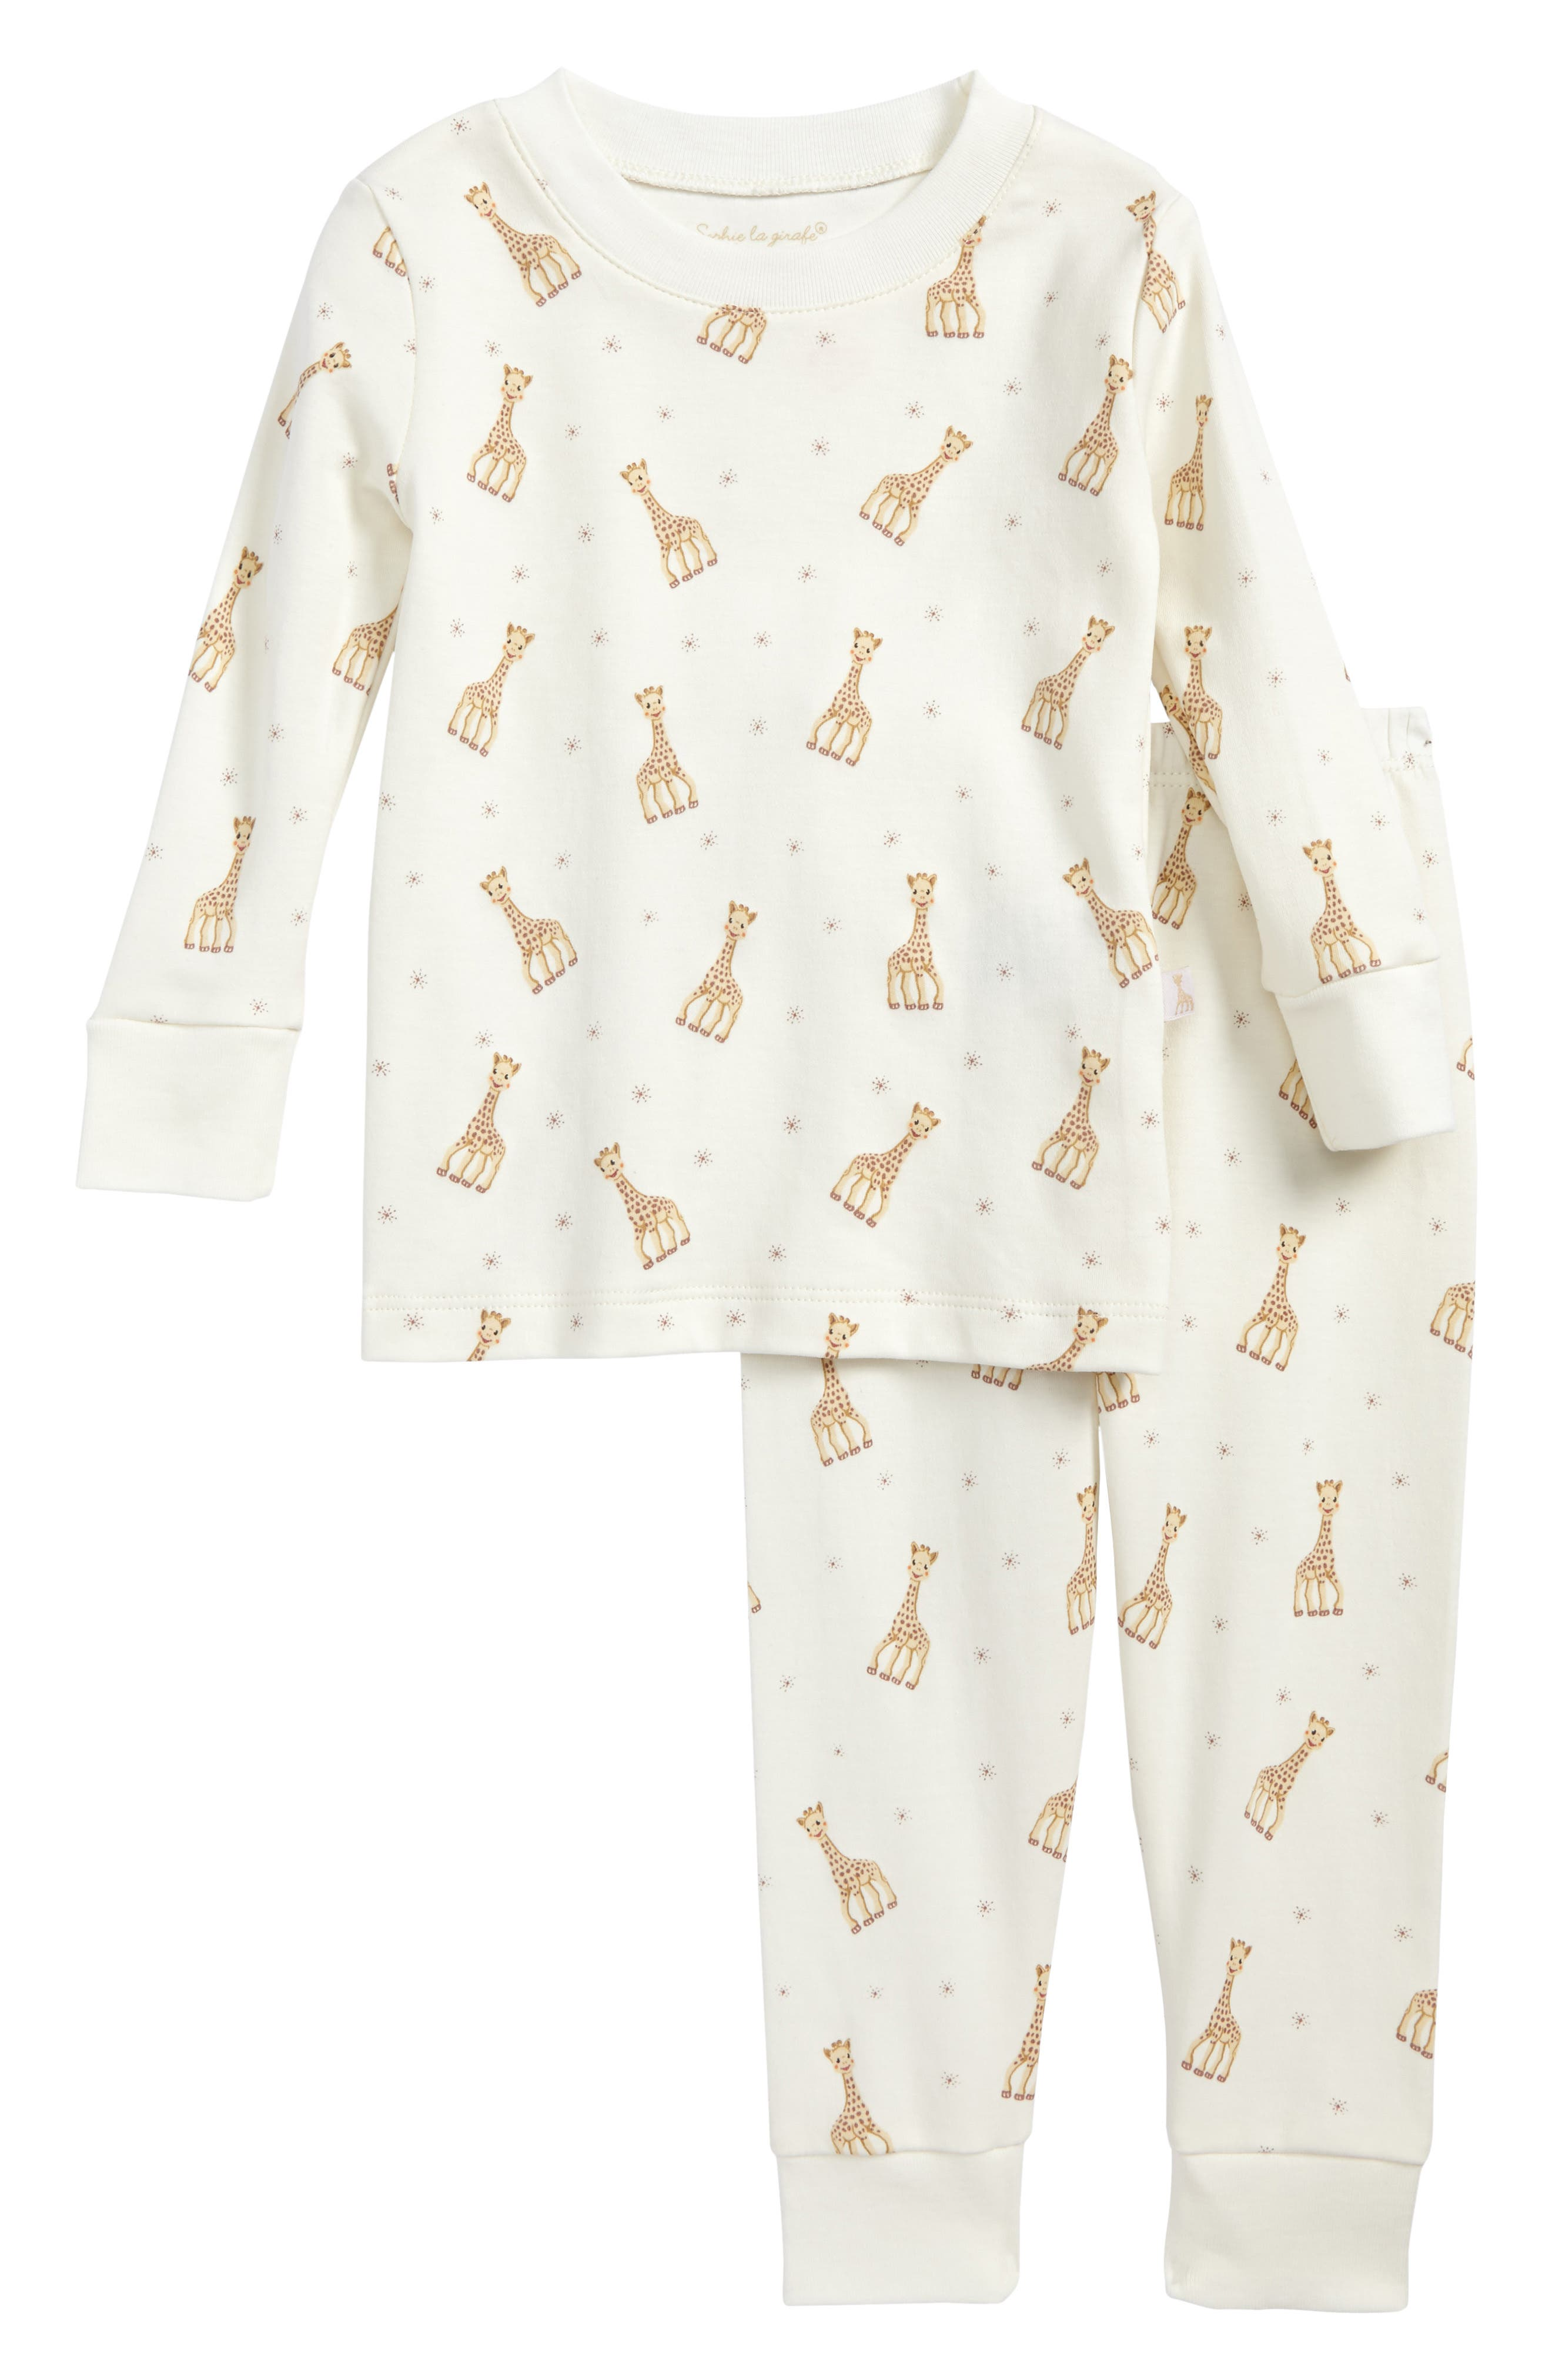 Alternate Image 1 Selected - Kissy Kissy Sophie la Girafe Fitted Two-Piece Pajamas (Baby)